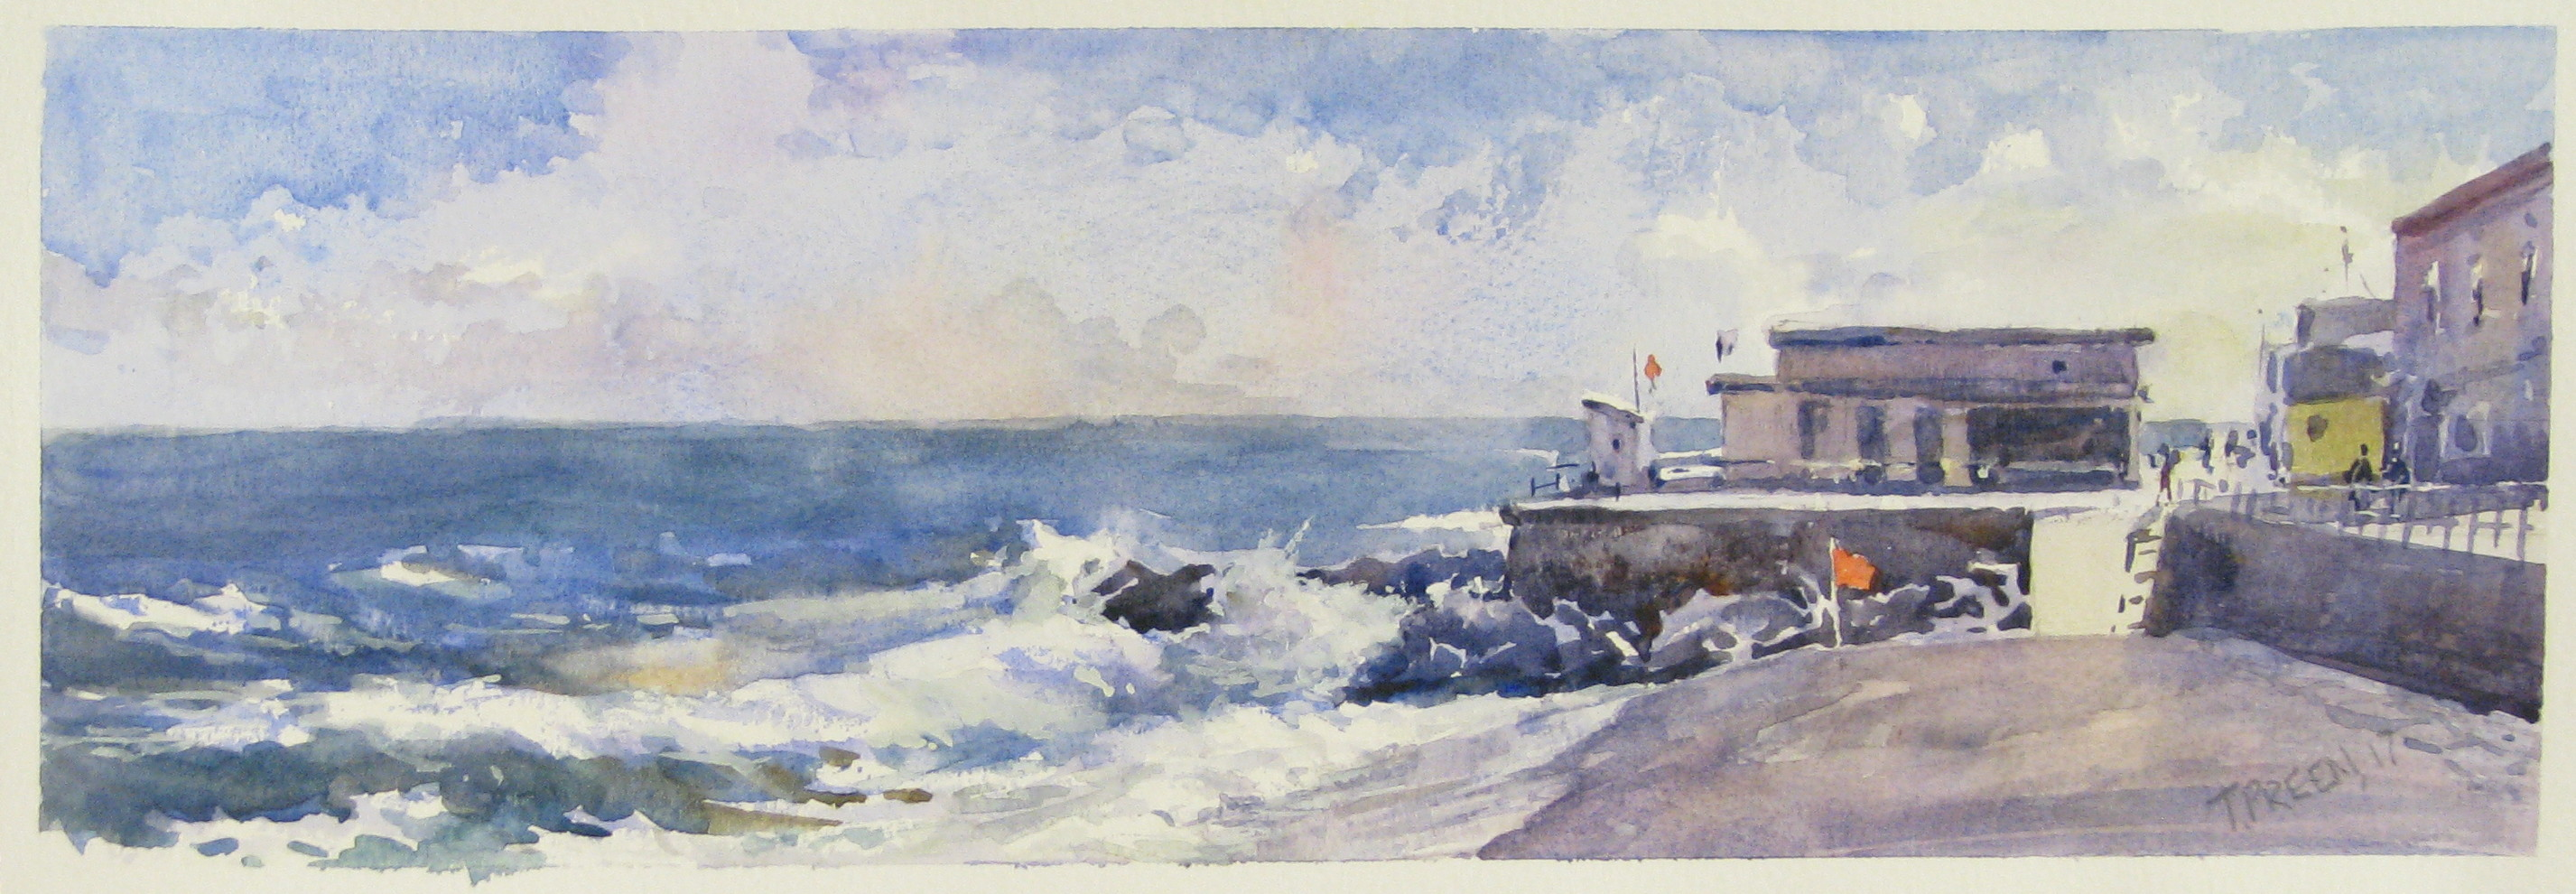 New Inspiring Watercolours from Terry Preen